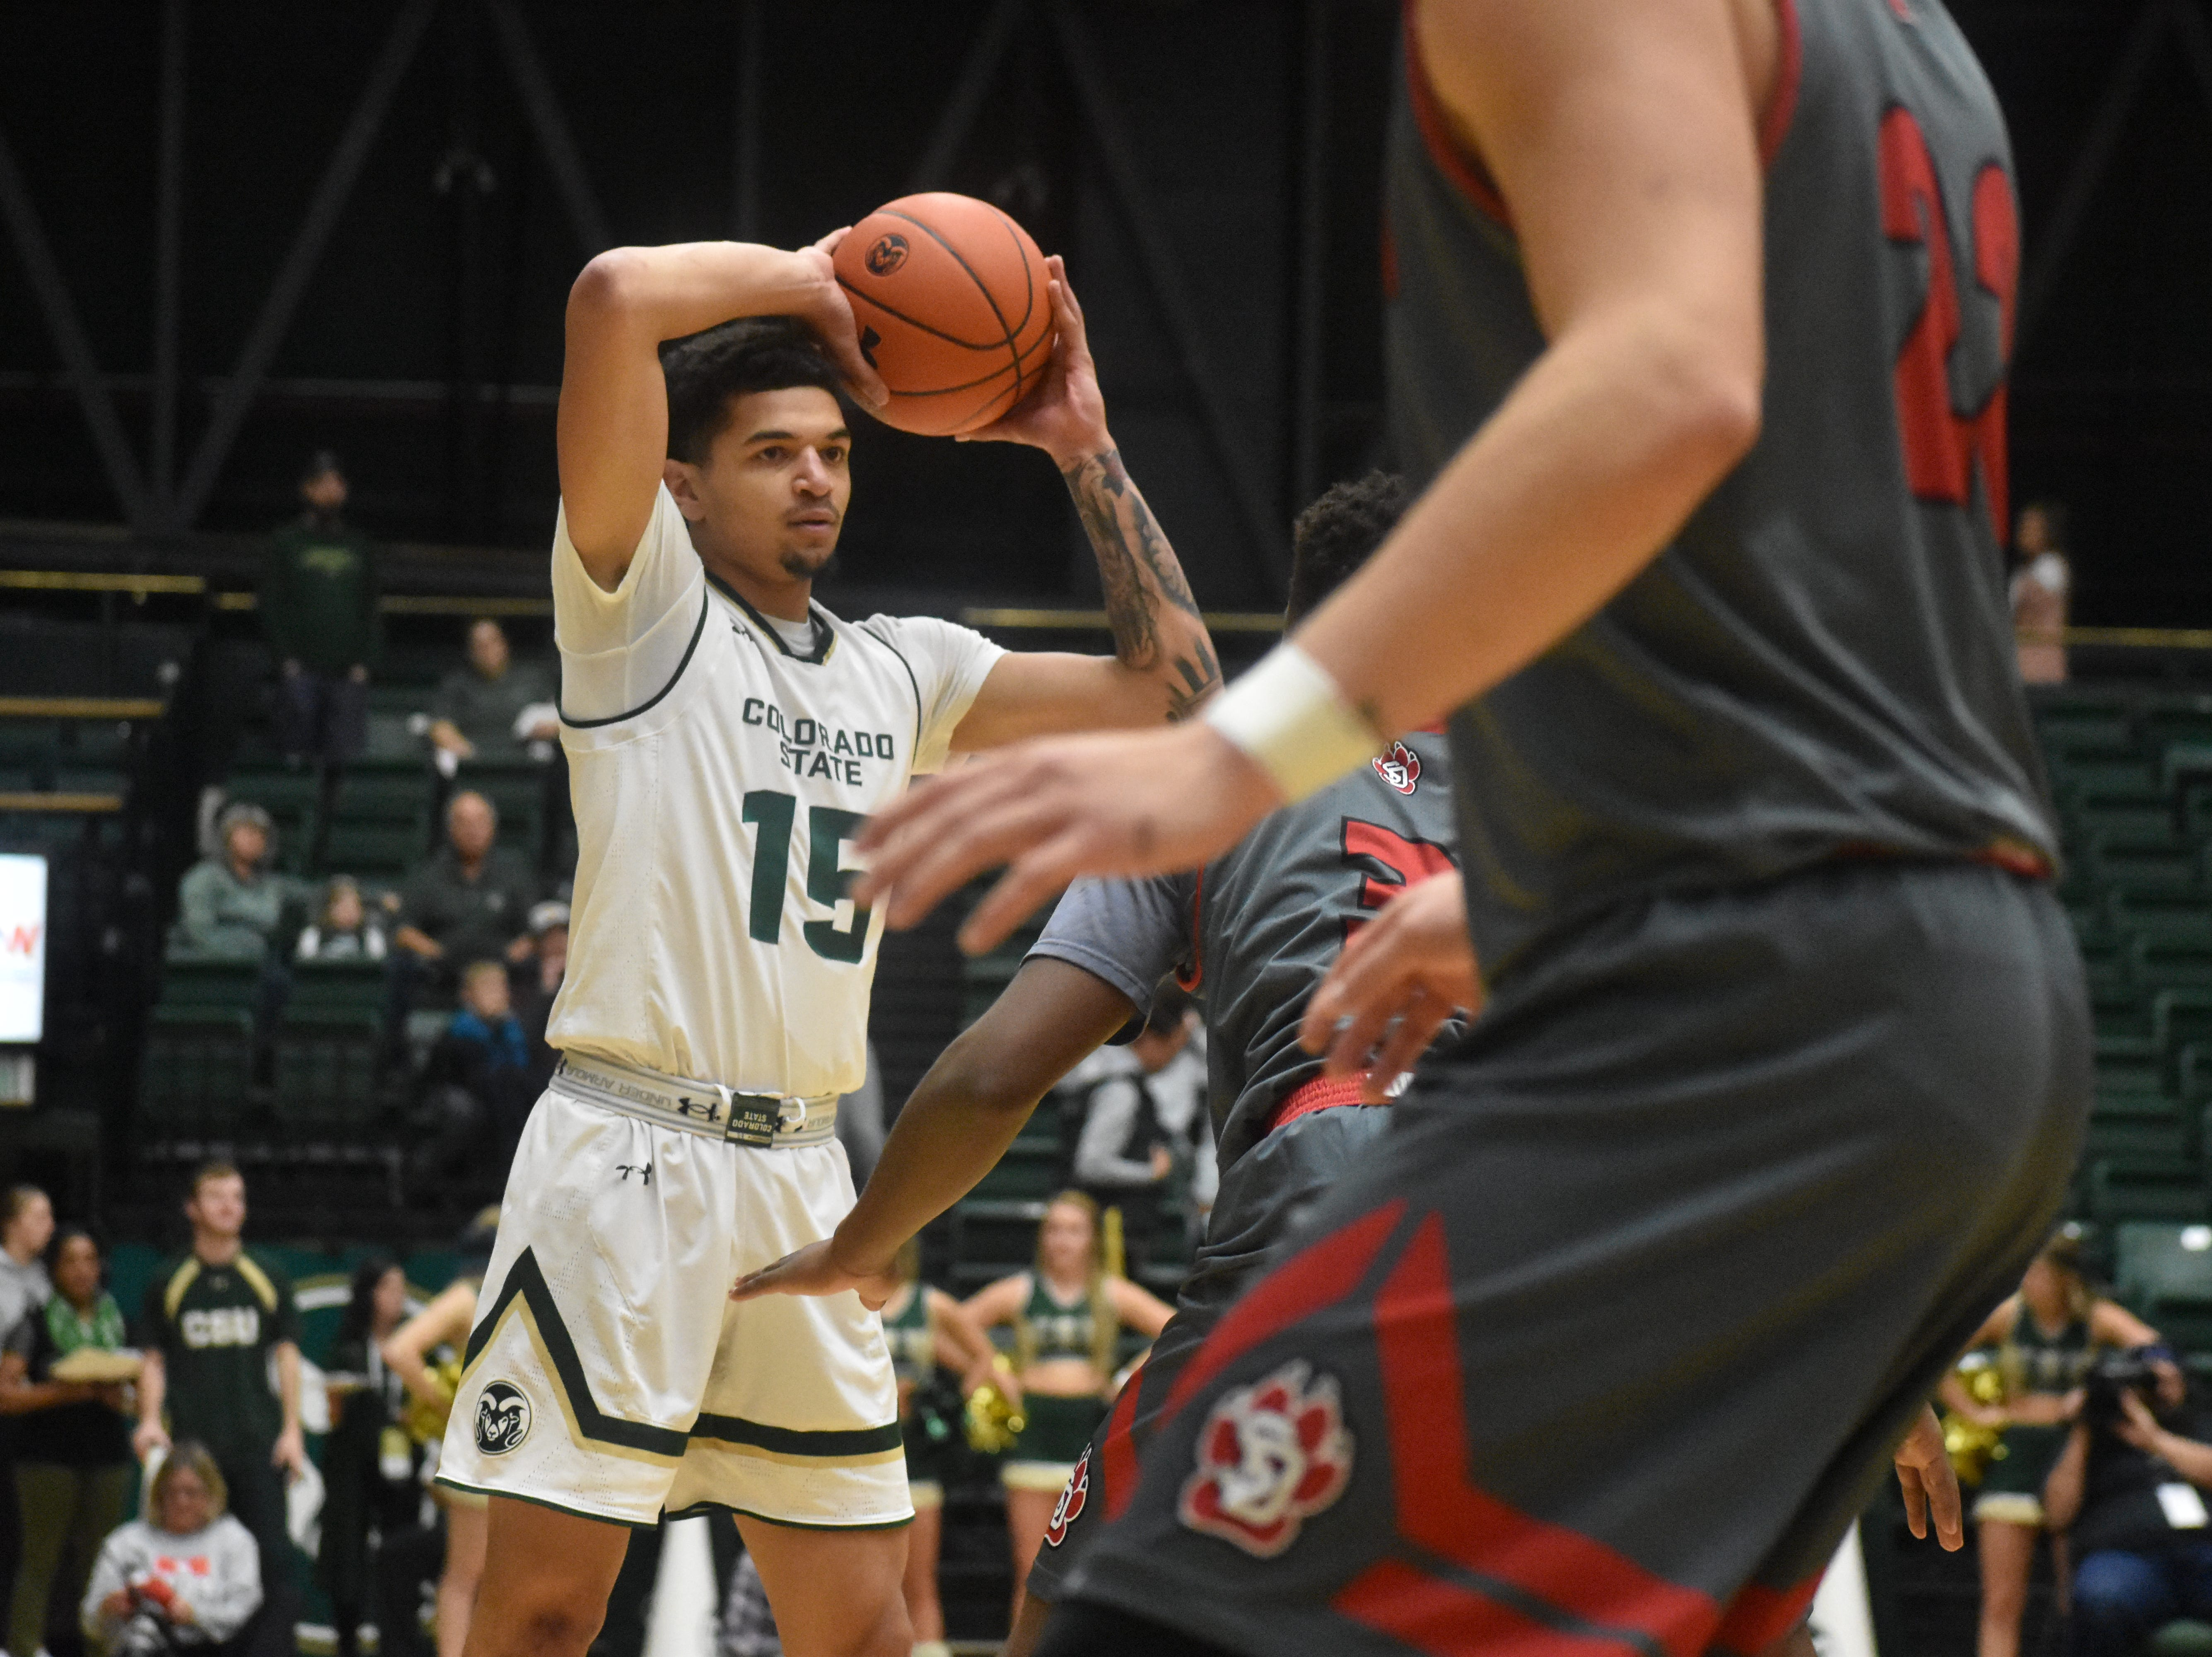 CSU guard Anthony Masinton-Bonner looks for a pass during Sunday's game against South Dakota at Moby Arena.